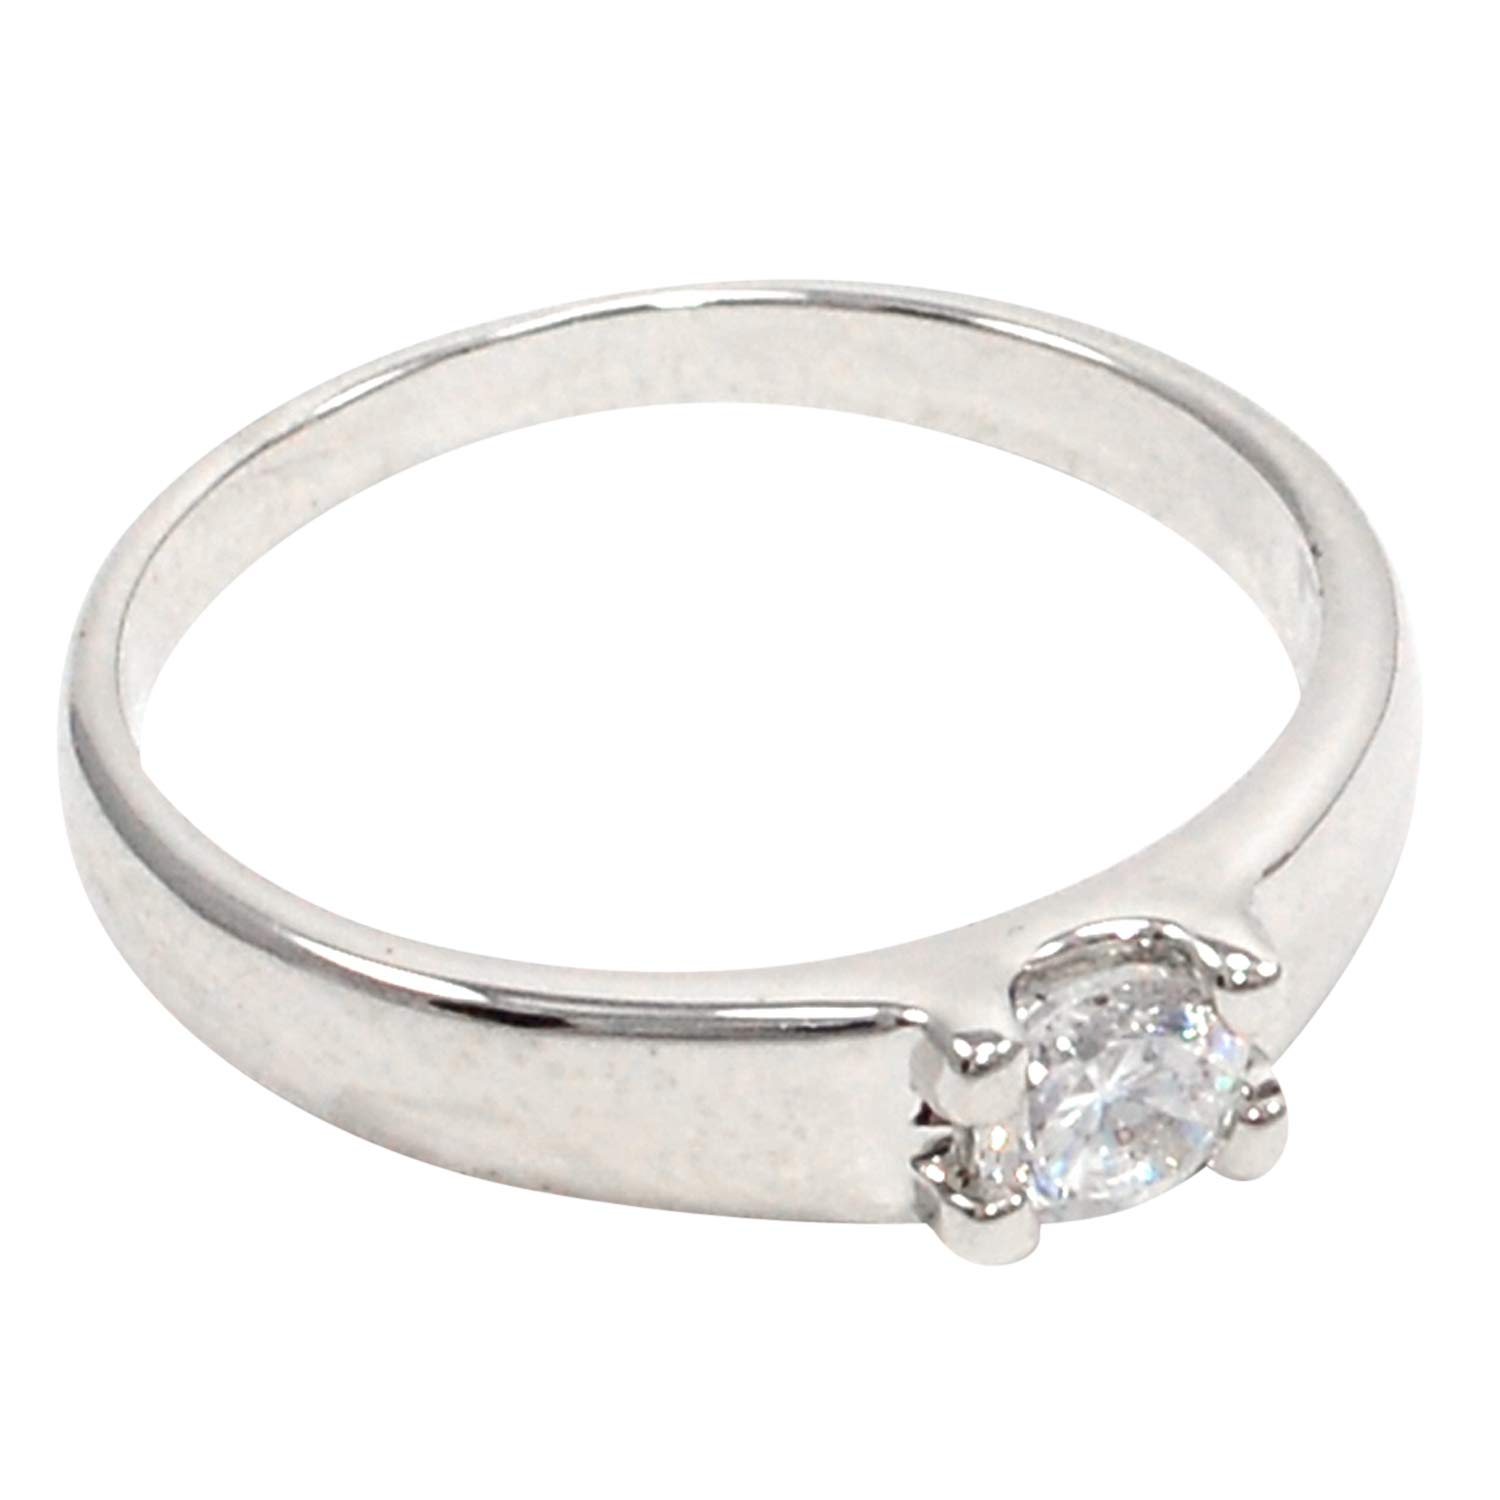 Saamarth Impex Cubic Zircon 925 Silver Plated Ring Sz 7 PG-108140